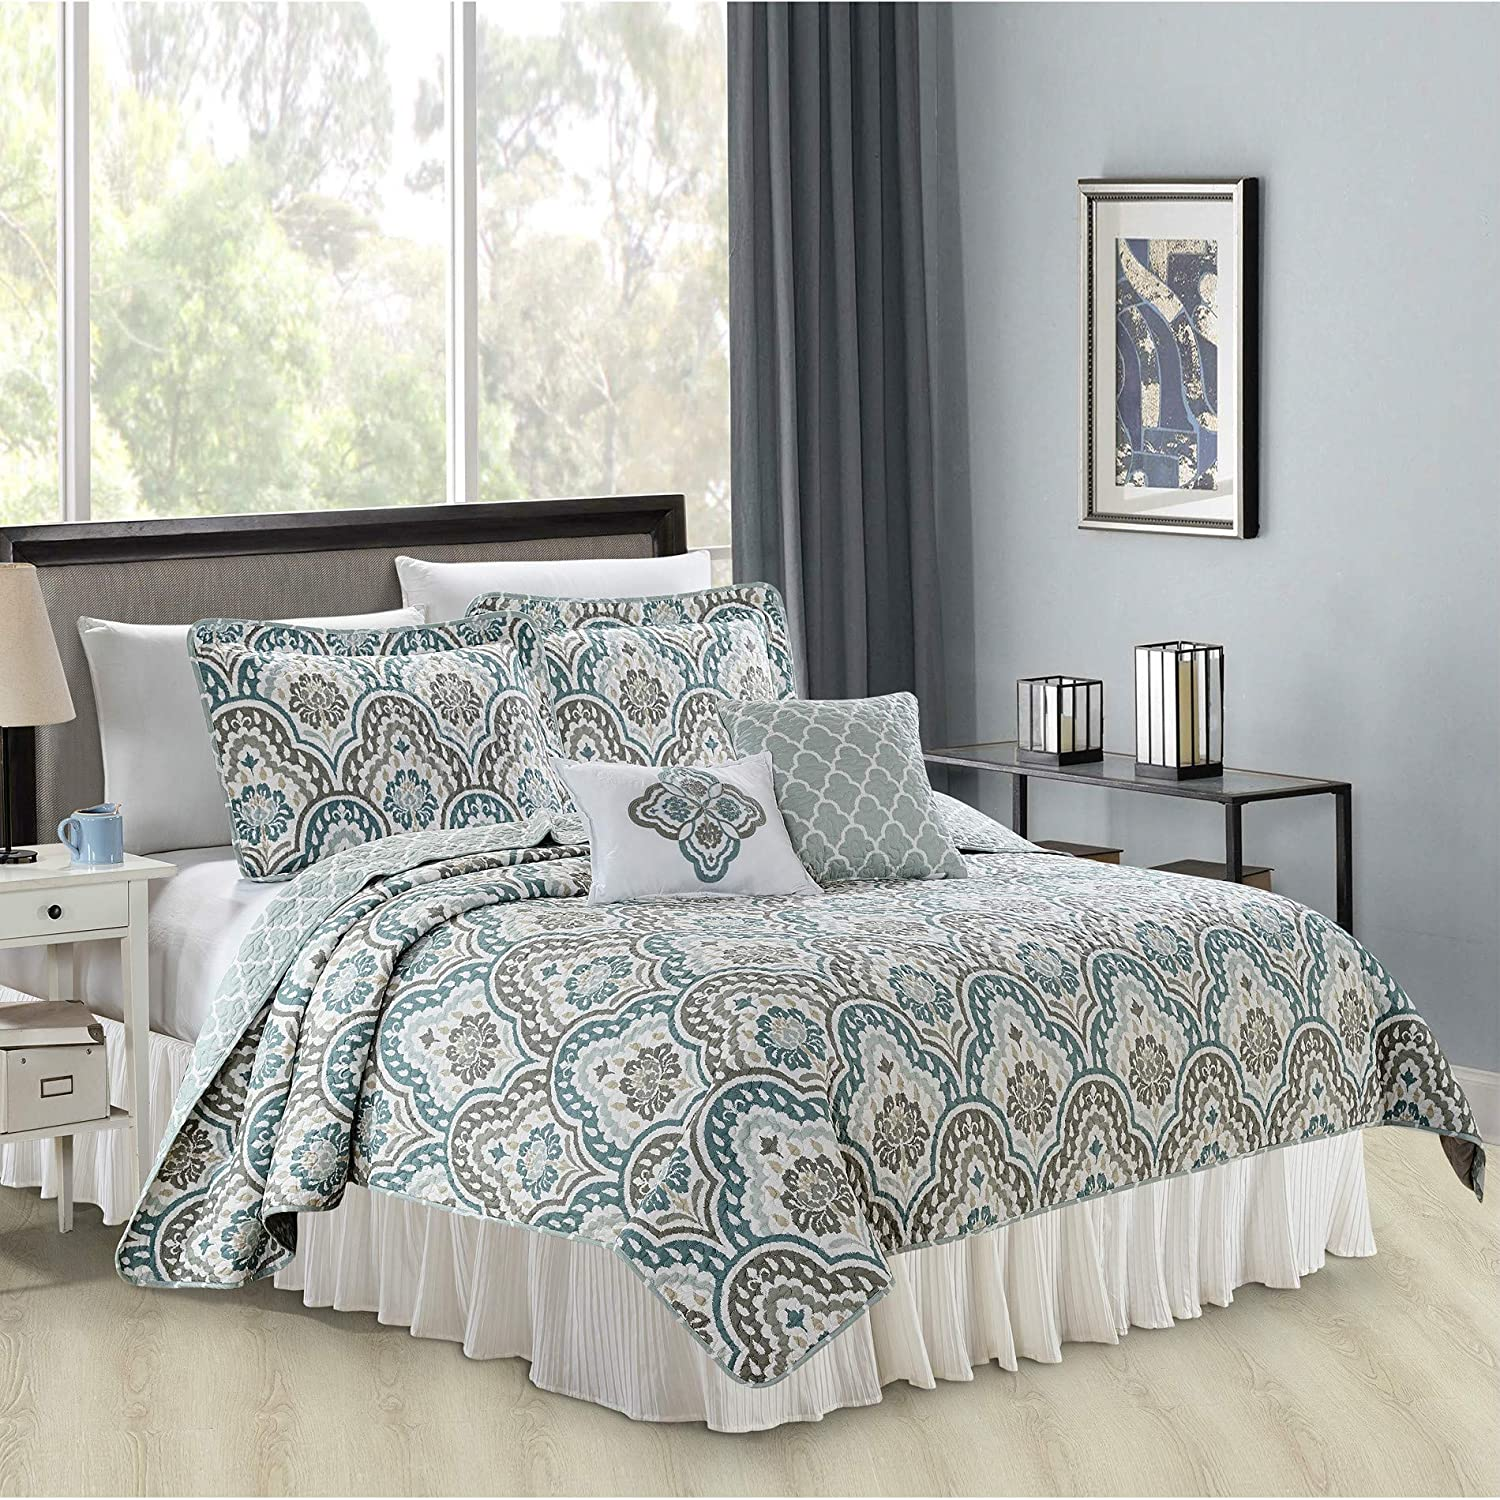 Queen Serenta Tivoli Ikat Design 5 Piece Teal Aqua Printed Prewashed Quilted Coverlet Bed cover Summer Quilt Blanket with Cotton Polyester Filled Embroidery Pillow Set